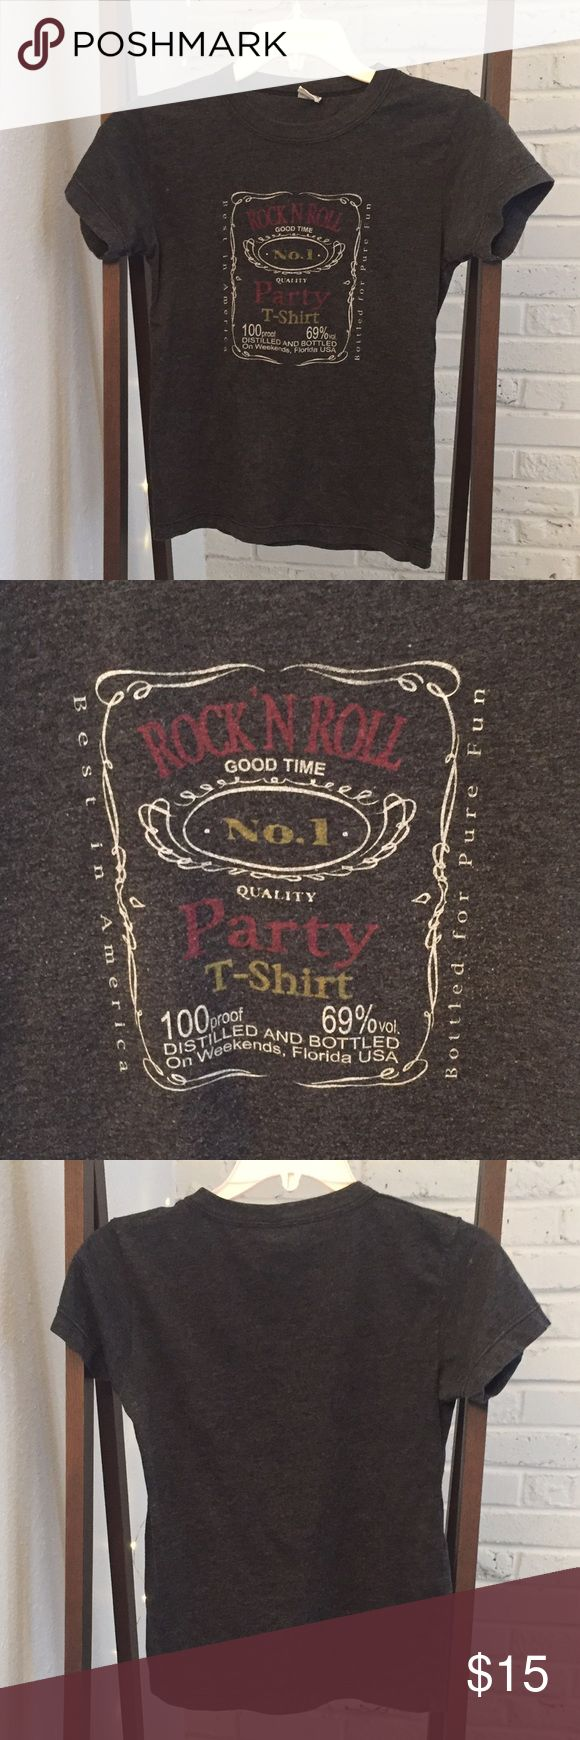 "Urban Outfitters Rock n Roll Jack Daniels T-Shirt Urban Outfitters soft ""party"" jack Daniels looking tshirt. No flaws; pre-loved condition. I'm a true medium, but it's tight on me so I'm listing as a small. However, it could go from XS-M depending on how you like to wear shirts! Urban Outfitters Tops Tees - Short Sleeve"